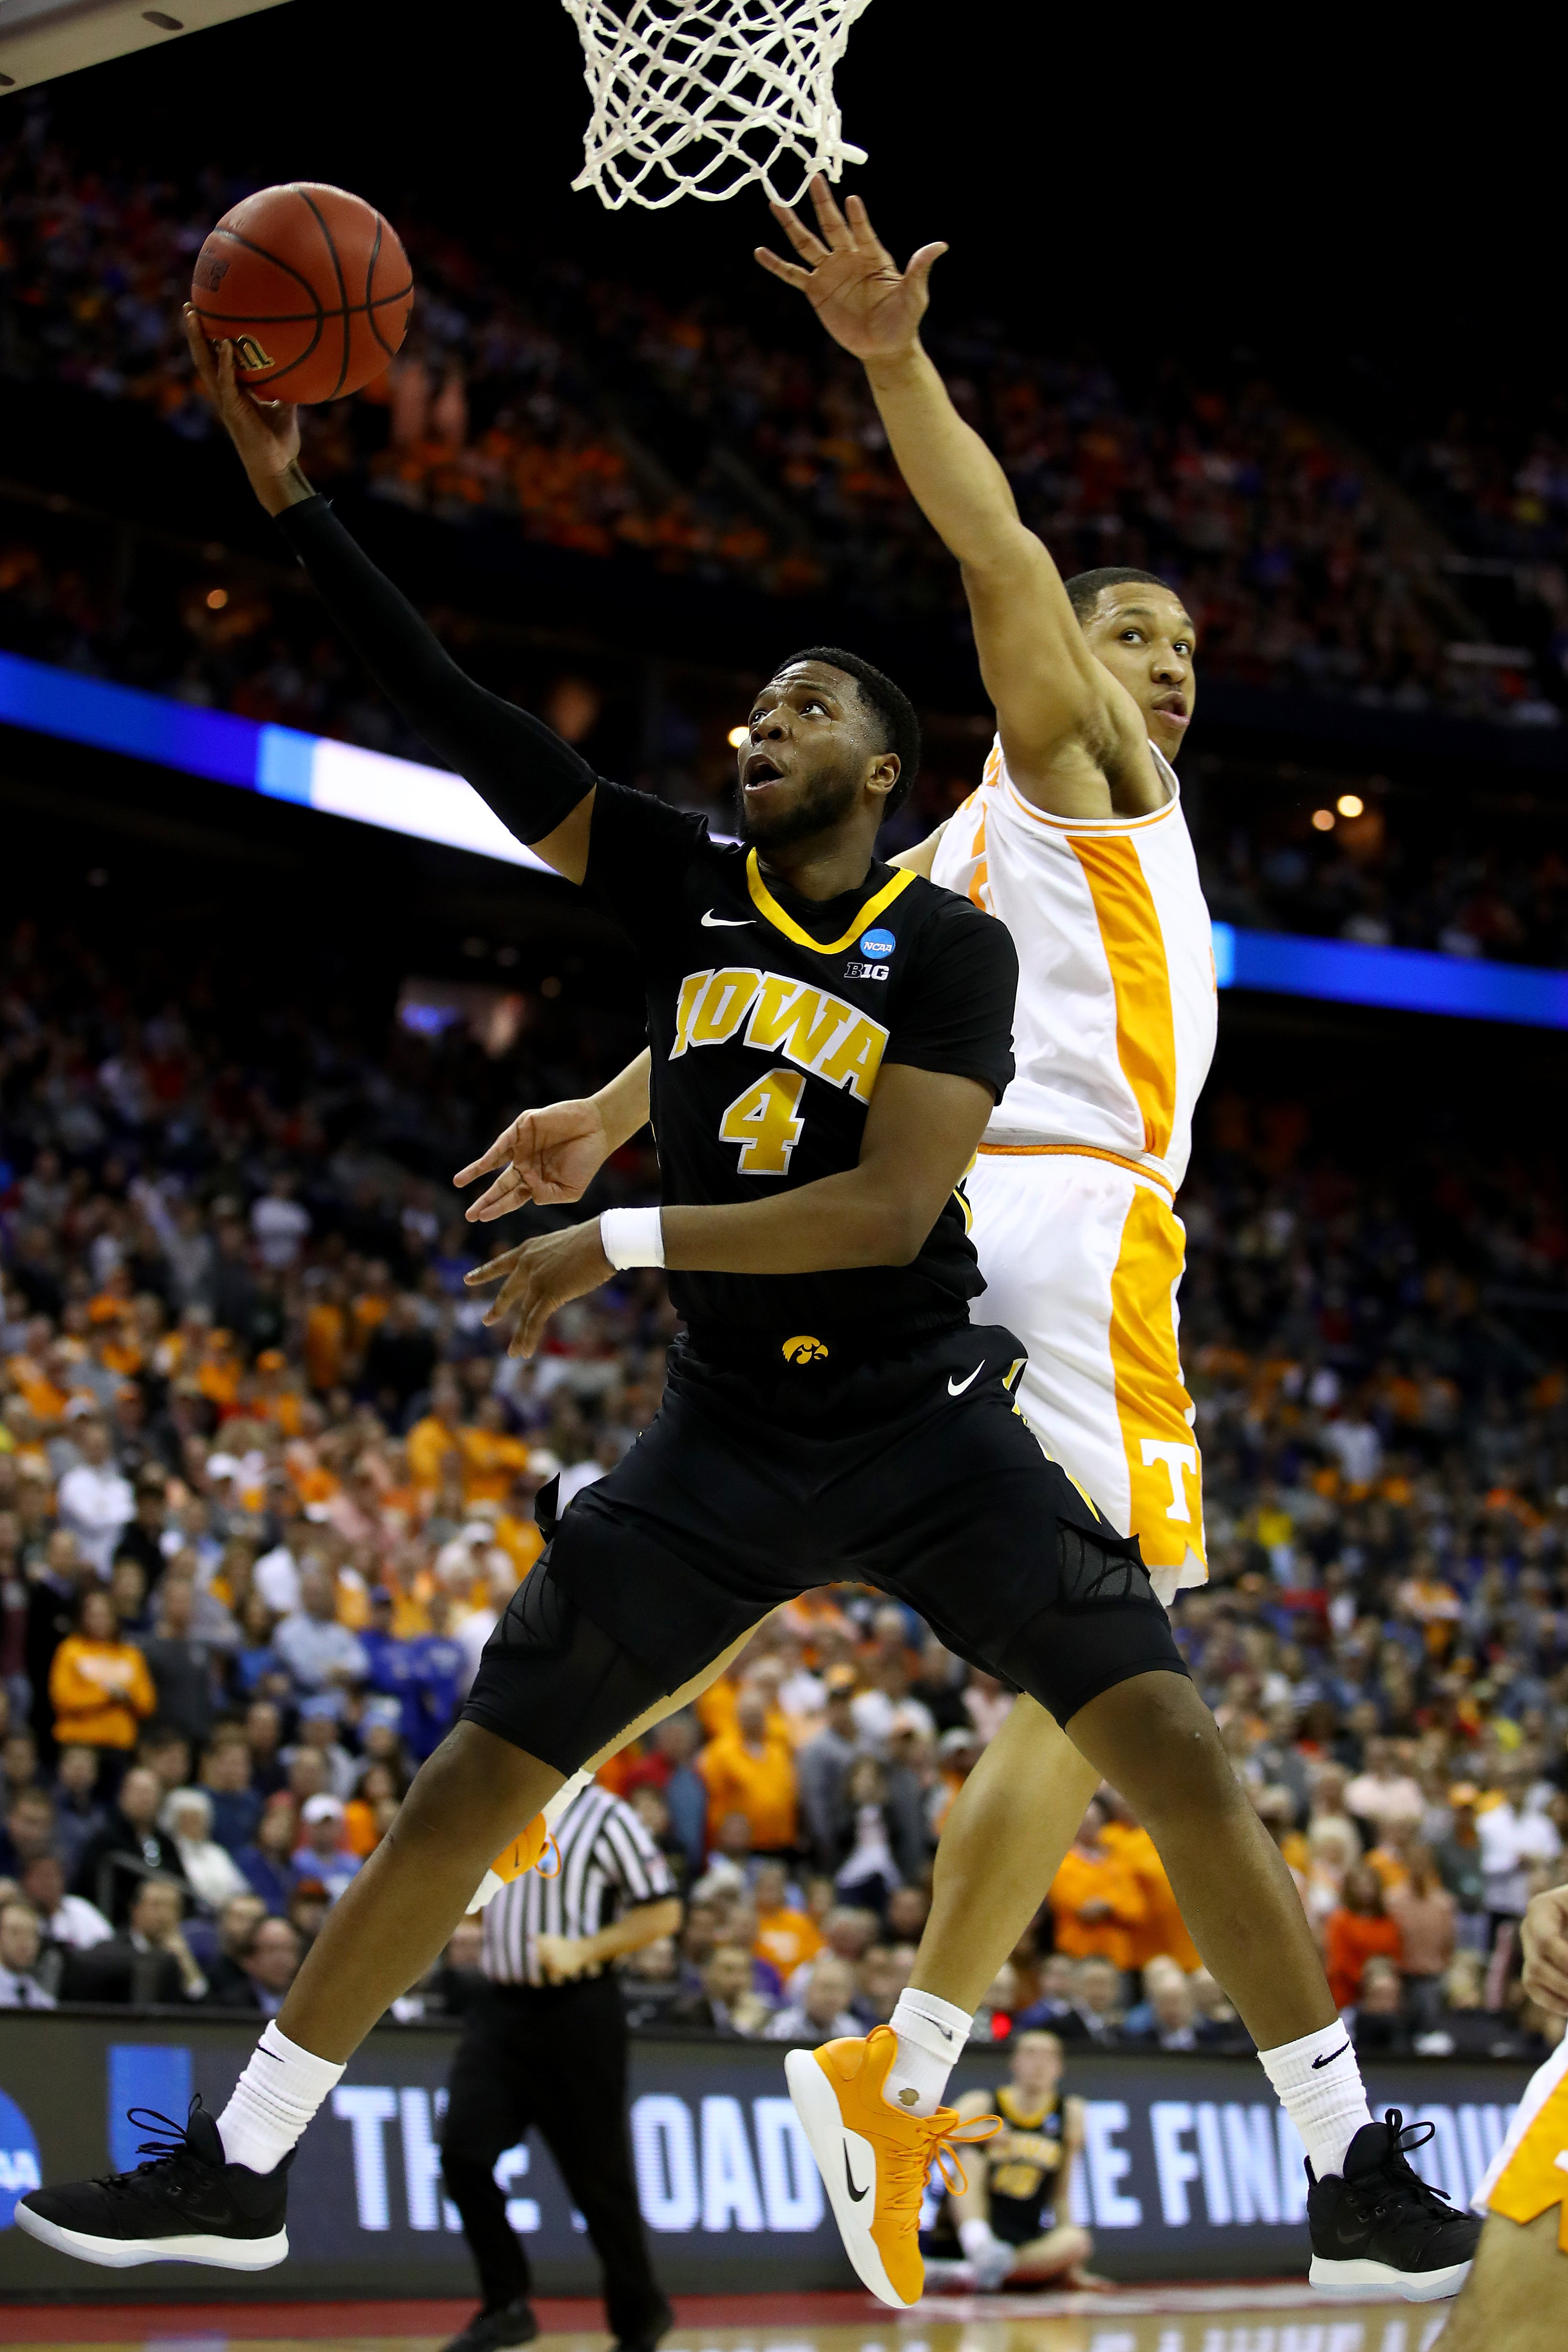 New Otago Nuggets signing Isaiah Moss takes the ball to the hoop for the University of Iowa, as...